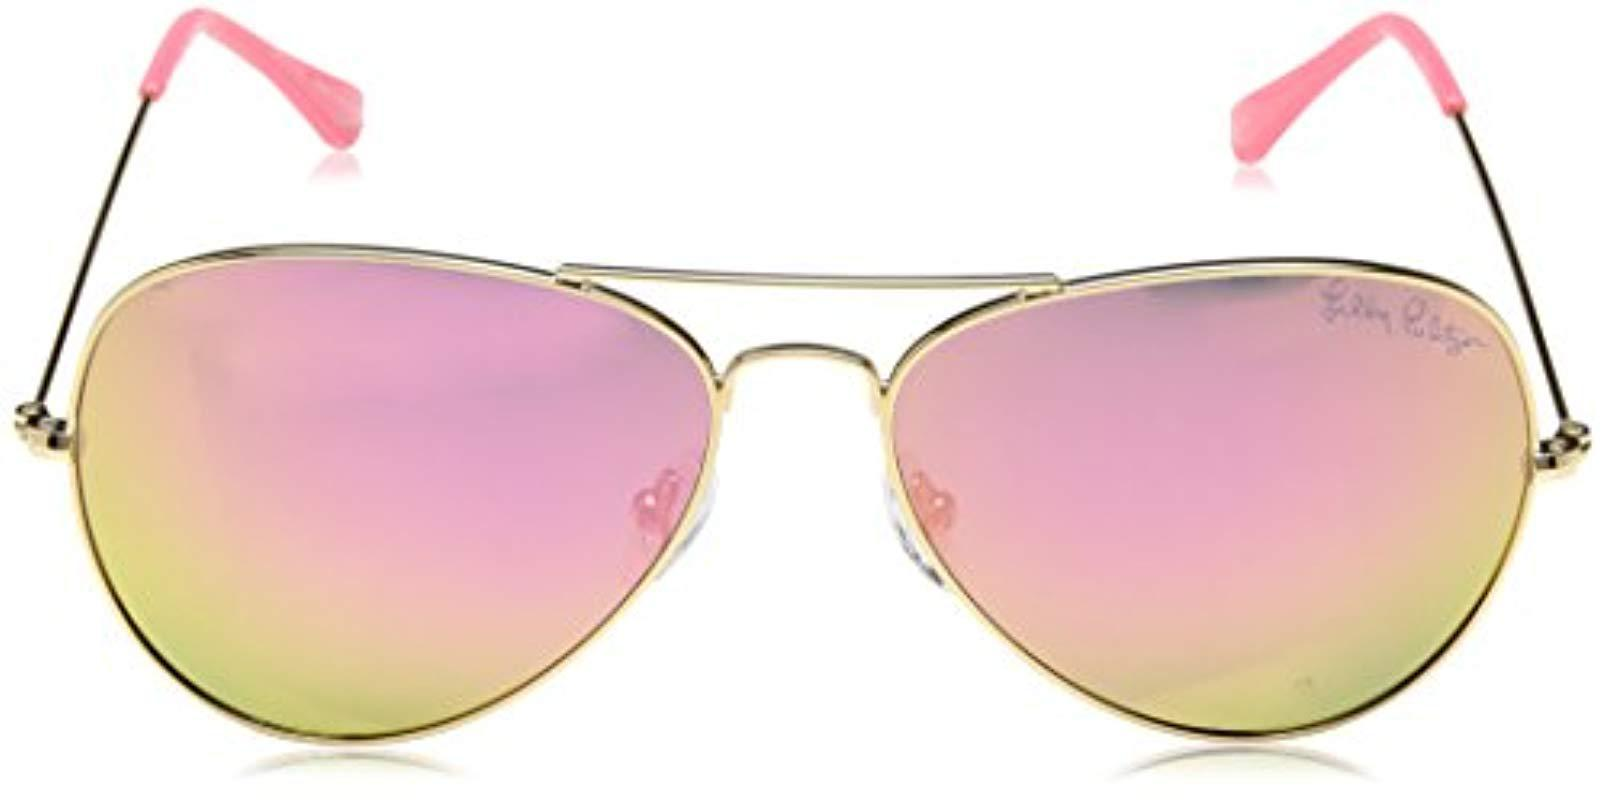 2f6bf10b6c2 Lilly Pulitzer - Multicolor Lexy Lexysb59 Polarized Aviator Sunglasses -  Lyst. View fullscreen